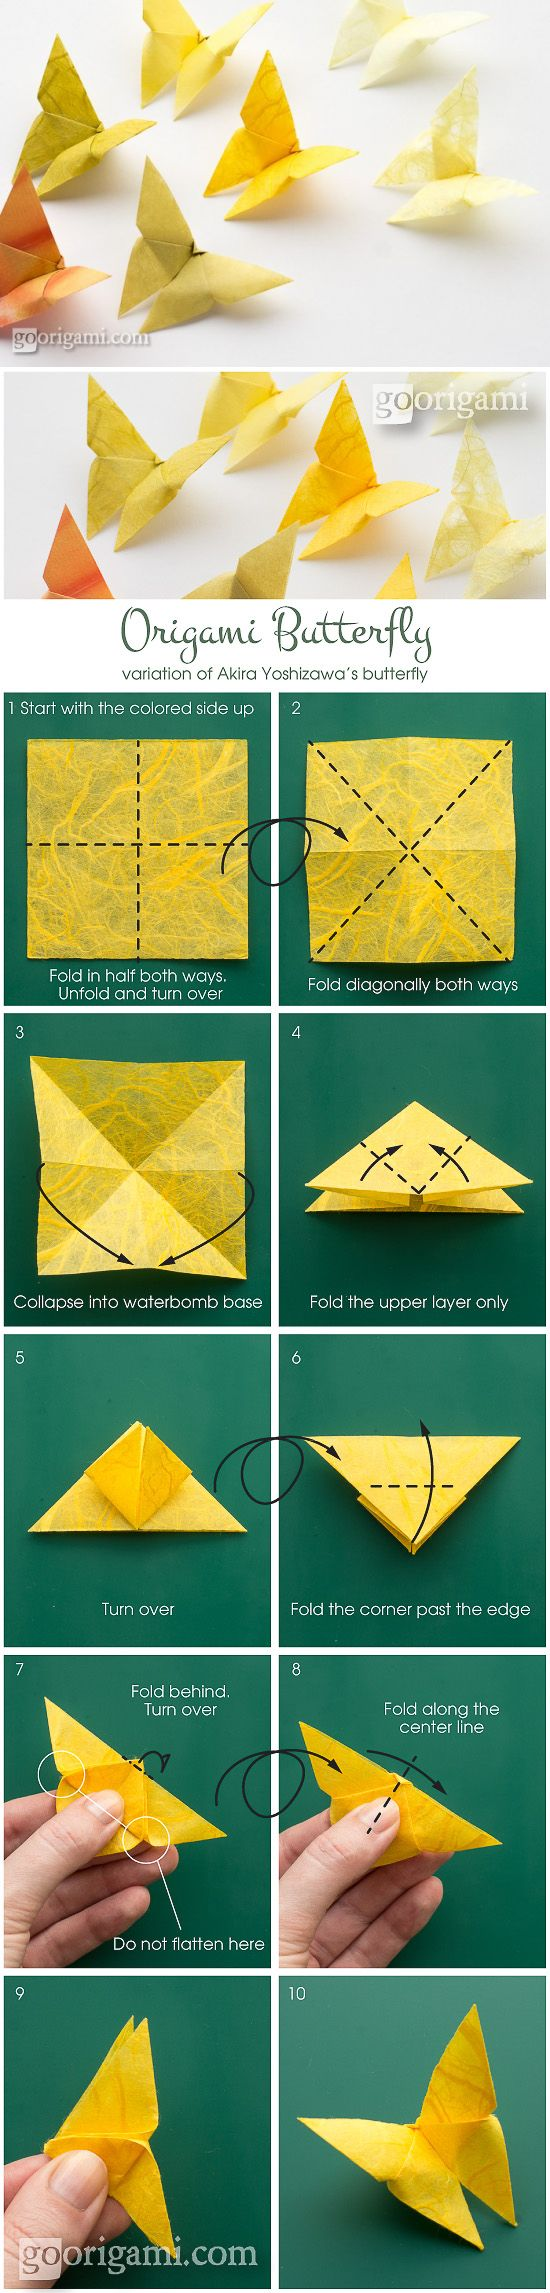 youtube origami butterfly instructions